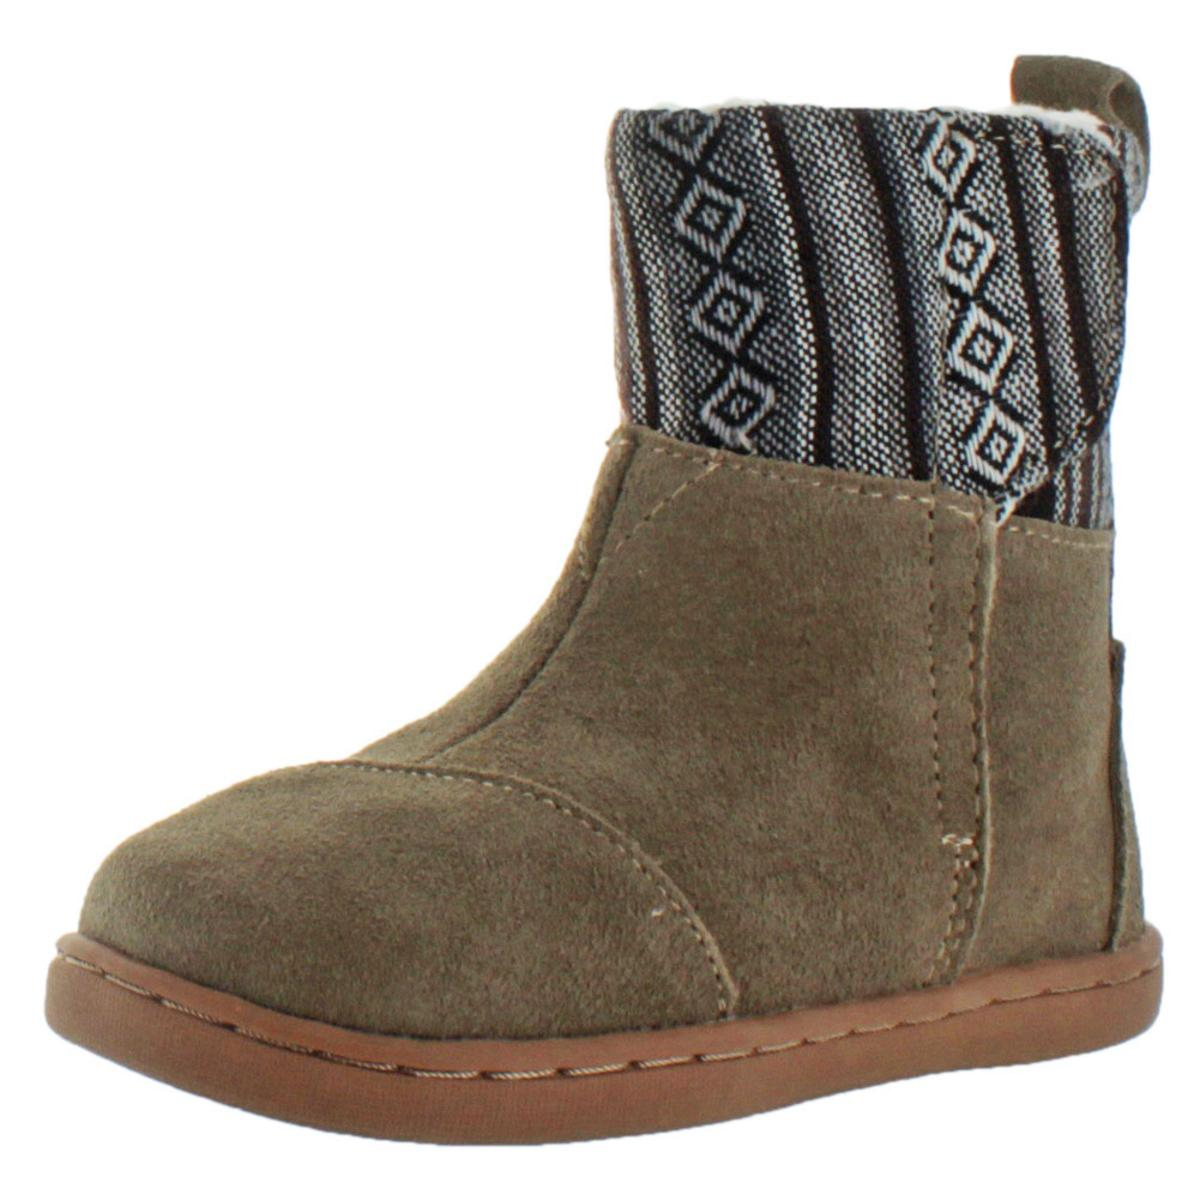 fafd01c637f Details about Toms Nepal Girls Toddler Faux Shearling Winter Boots Booties